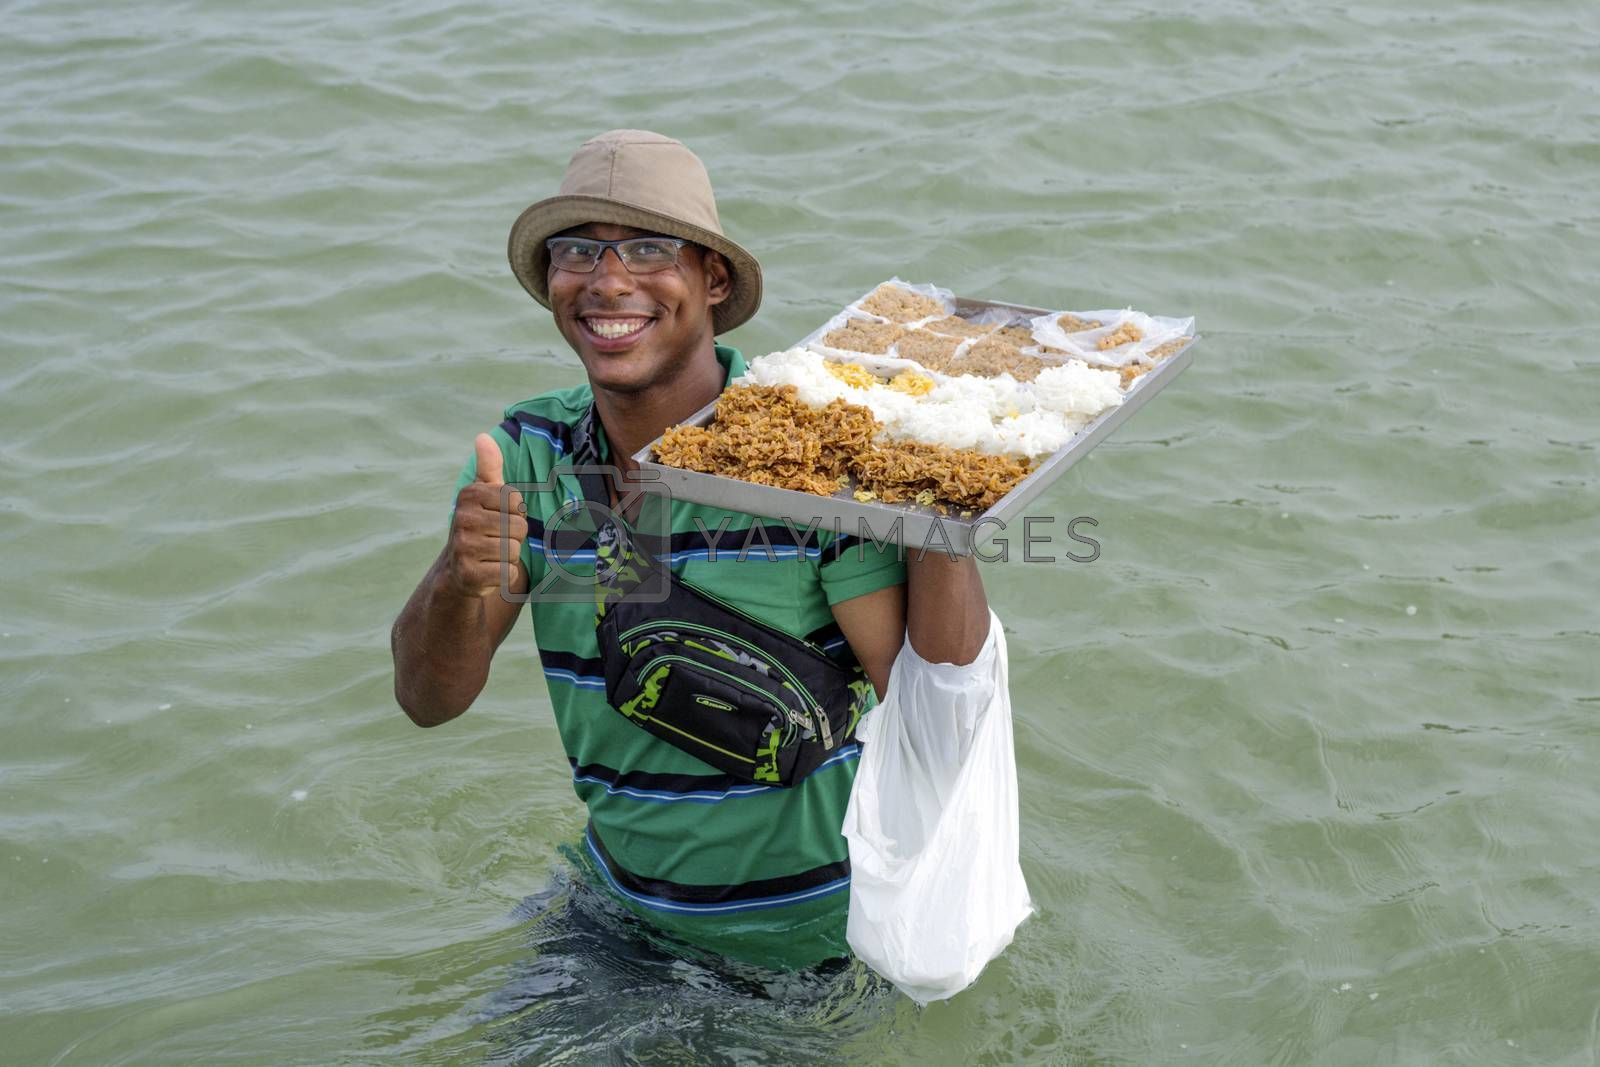 Pernambuco, Brazil July 6, 2016: An unidentified coconut sweet vendor in Chicken Beach with typical sail boats in Ipojuca City near barrier reef, northeast Brazil